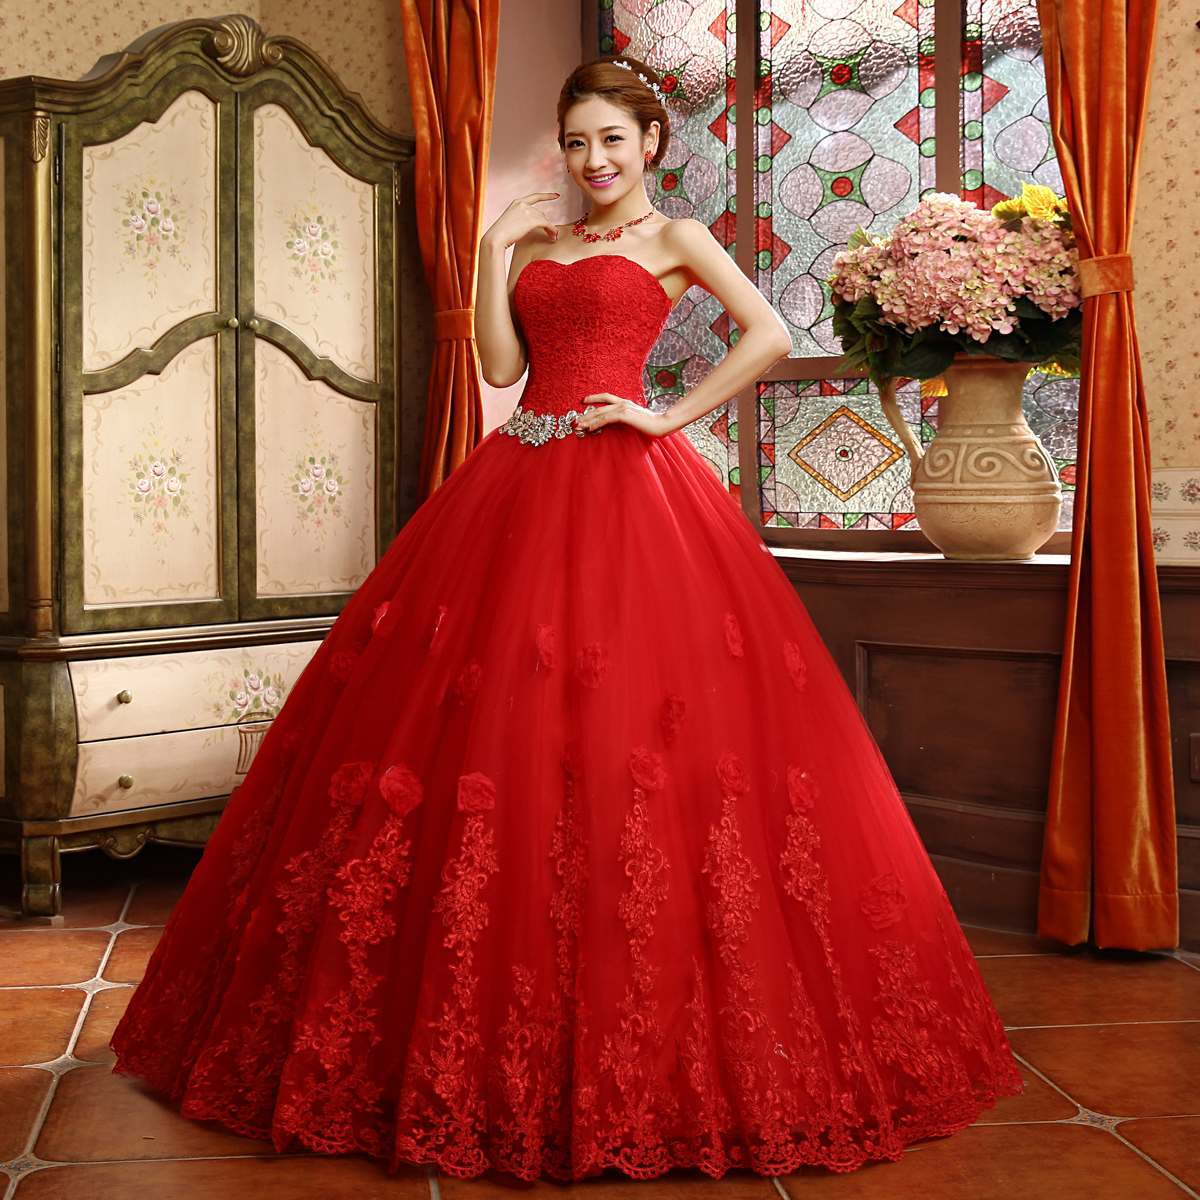 Red wedding dresses buy online wedding dresses in redlands for Purchase wedding dress online